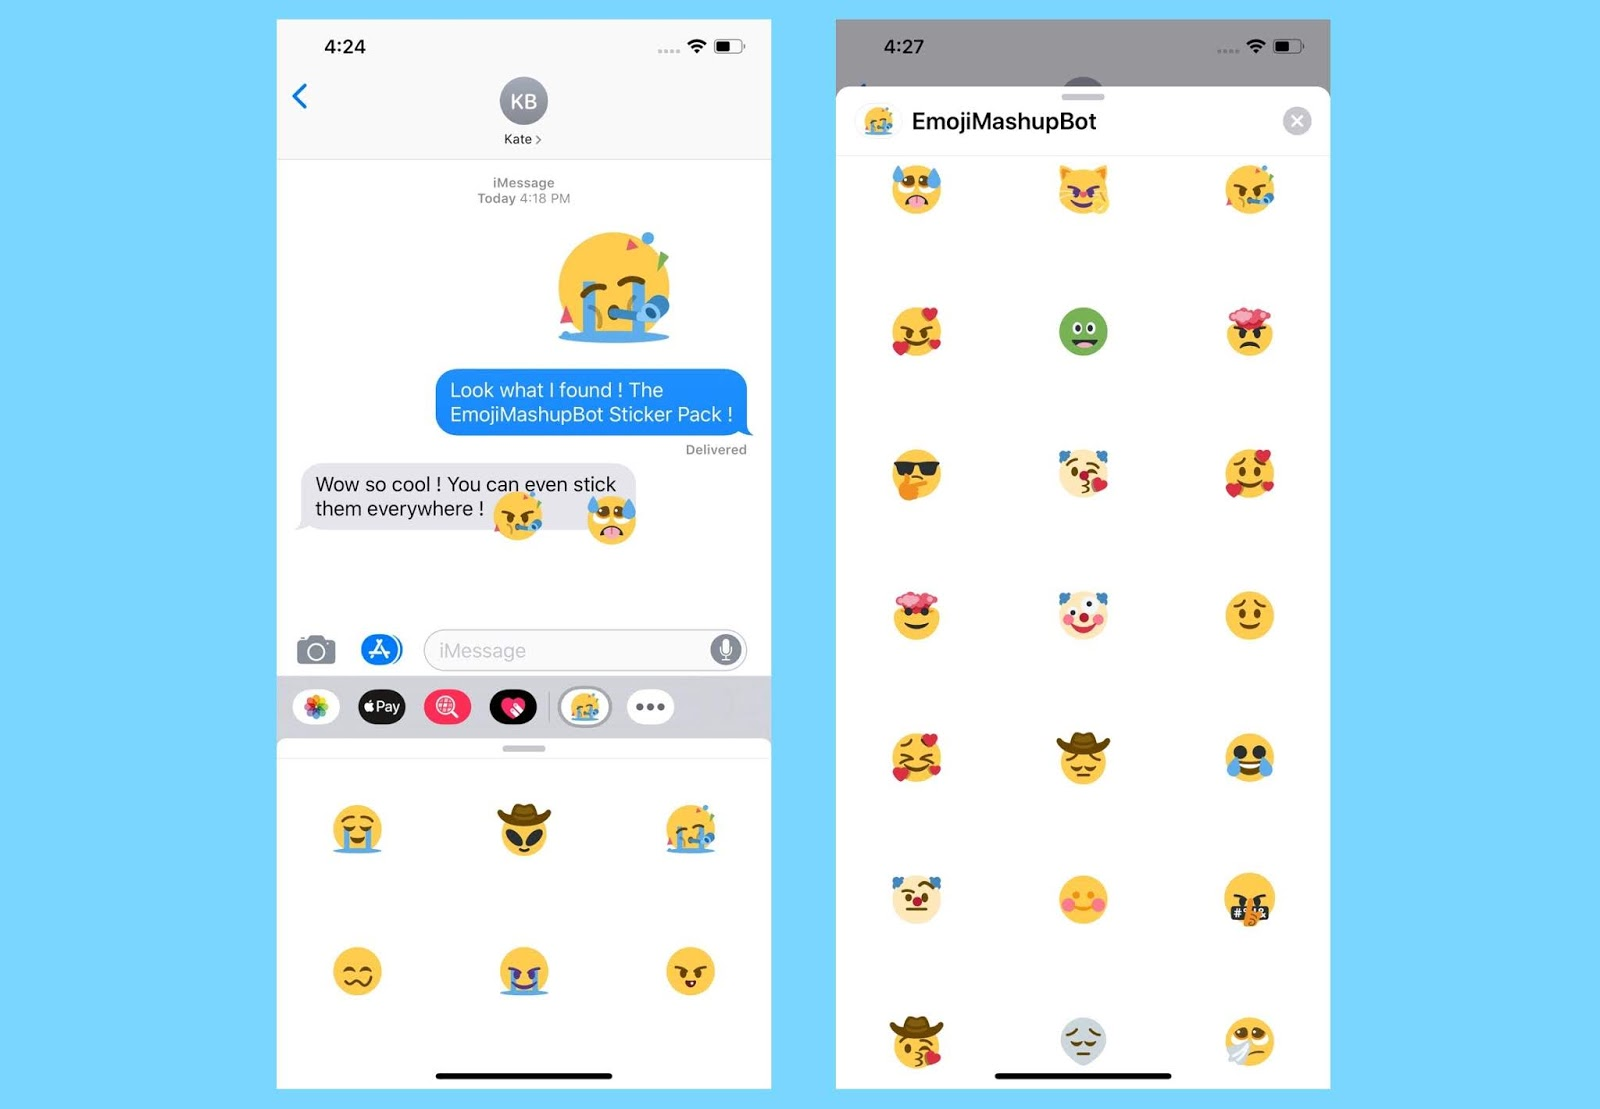 The new Emoji Mashup Pack is now available on Whatsapp and iMessage